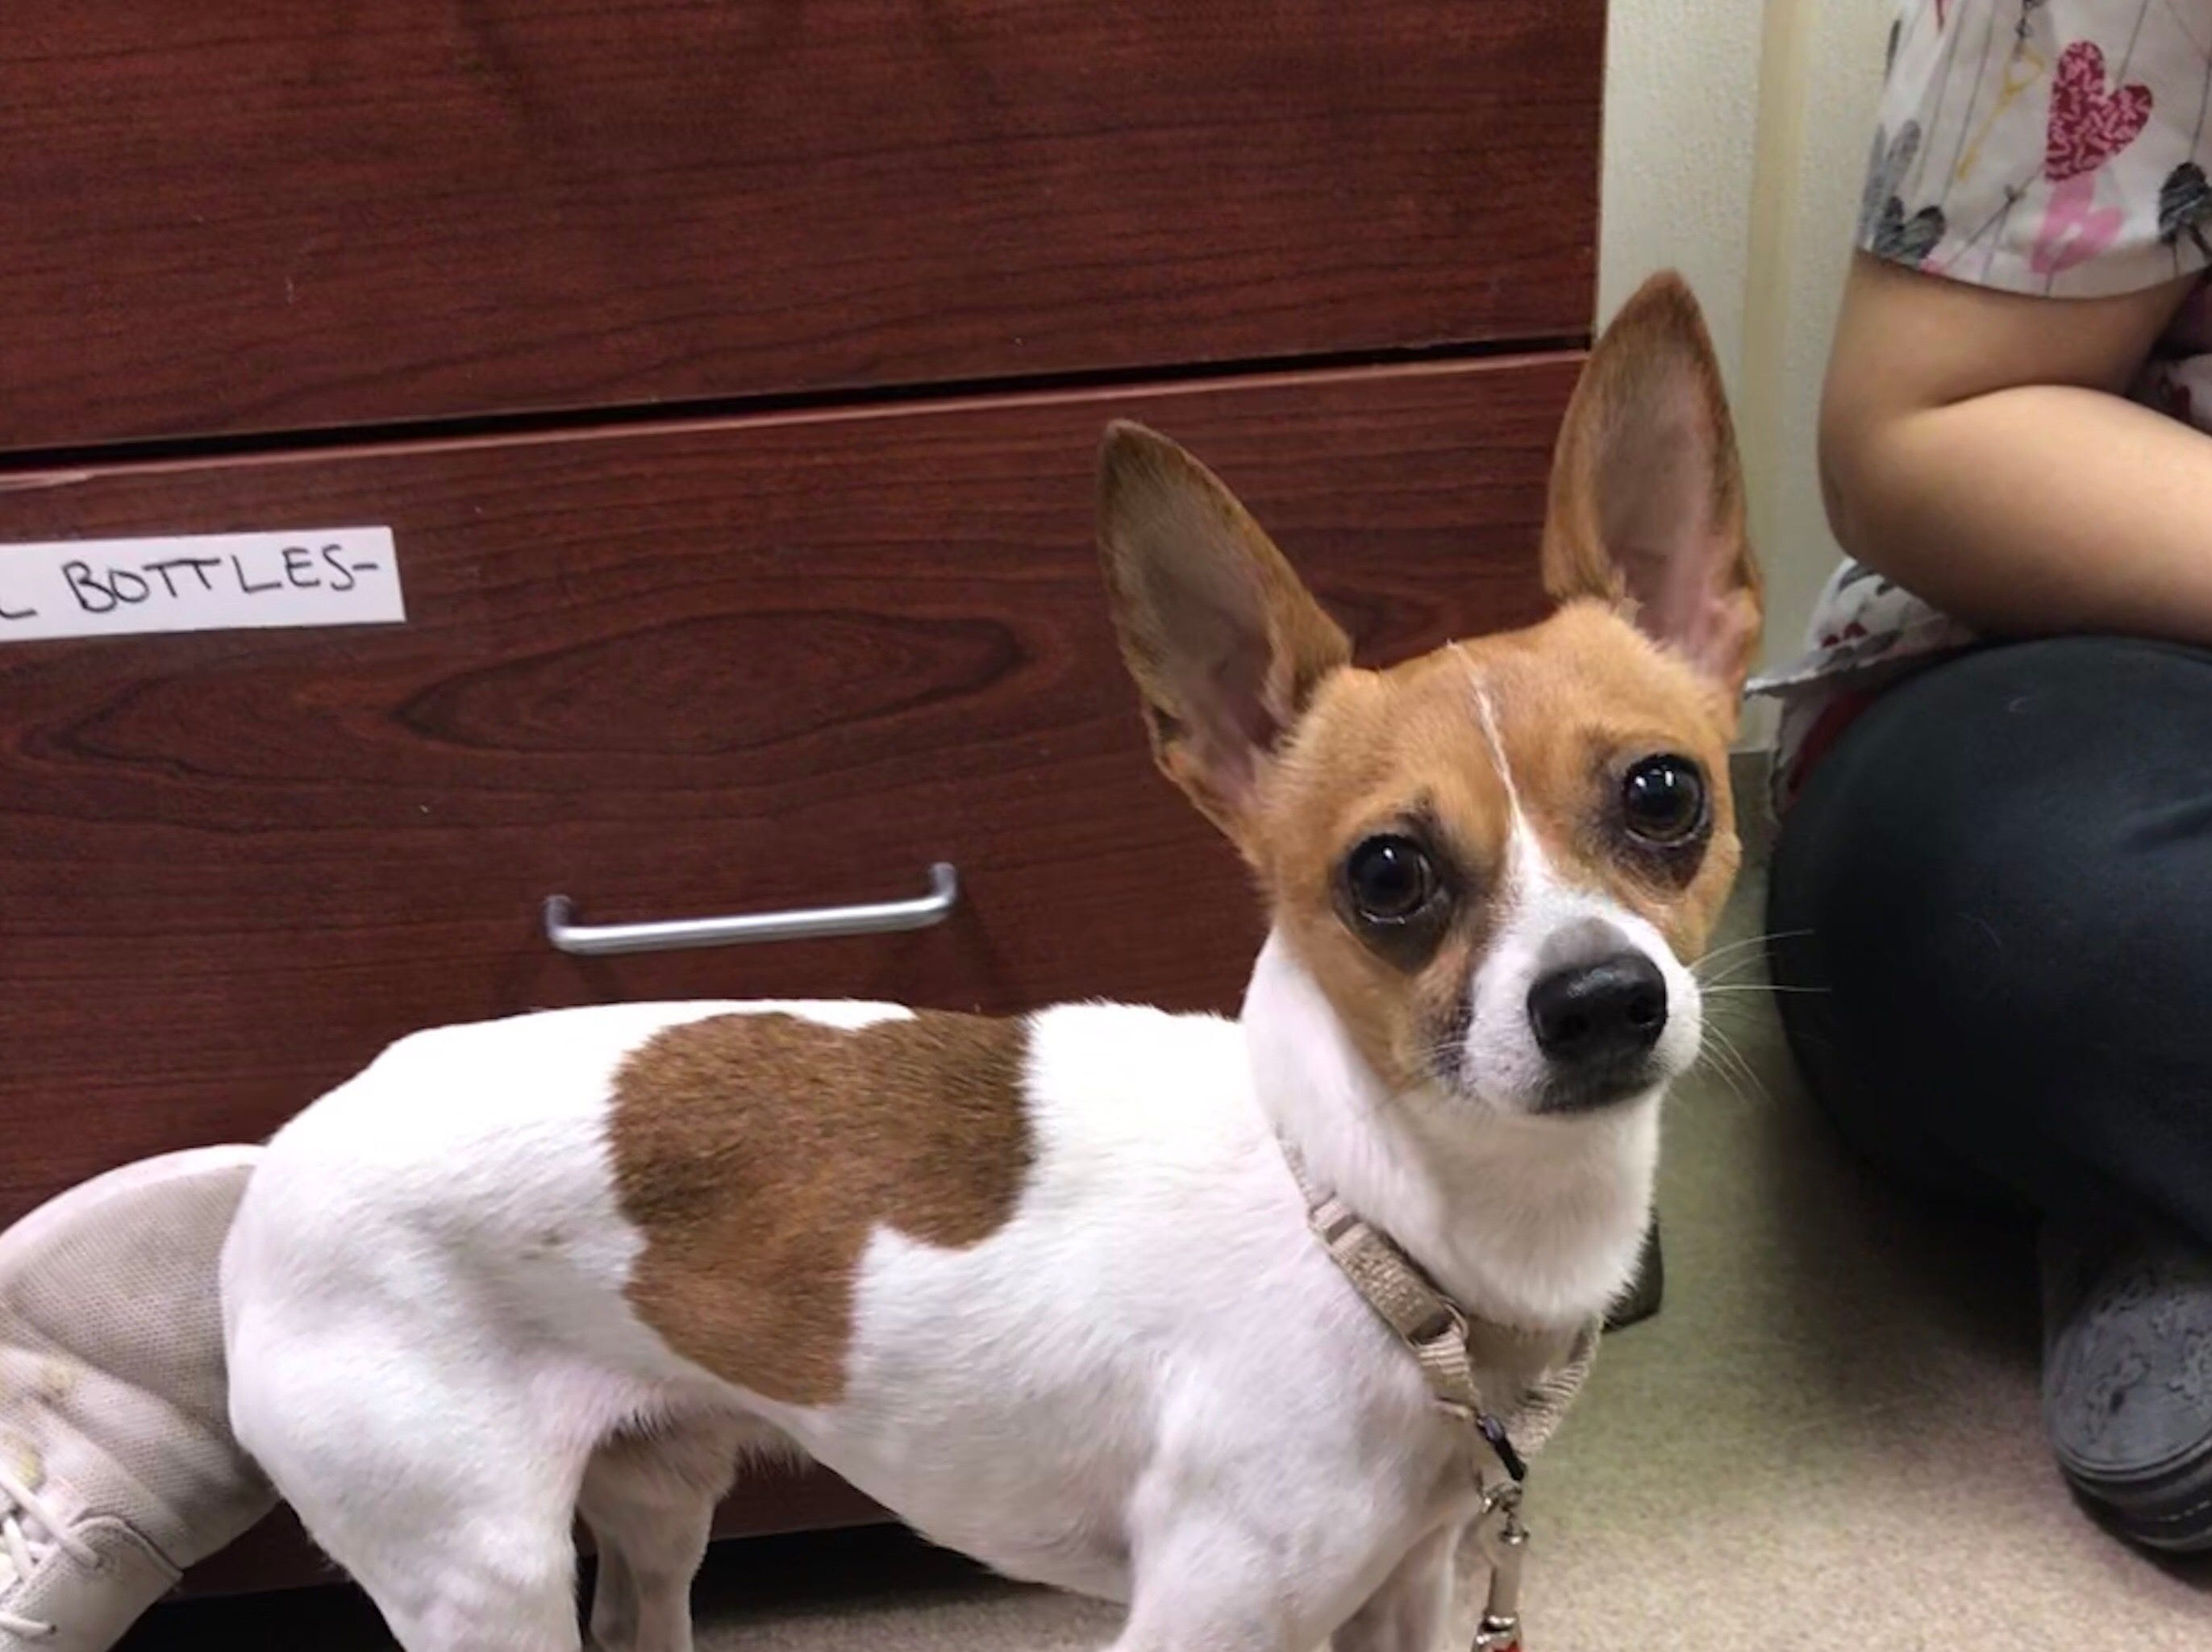 Chocolate, a 3-year-old Chihuahua mix, must go home with his best friend, Prince. He is neutered.